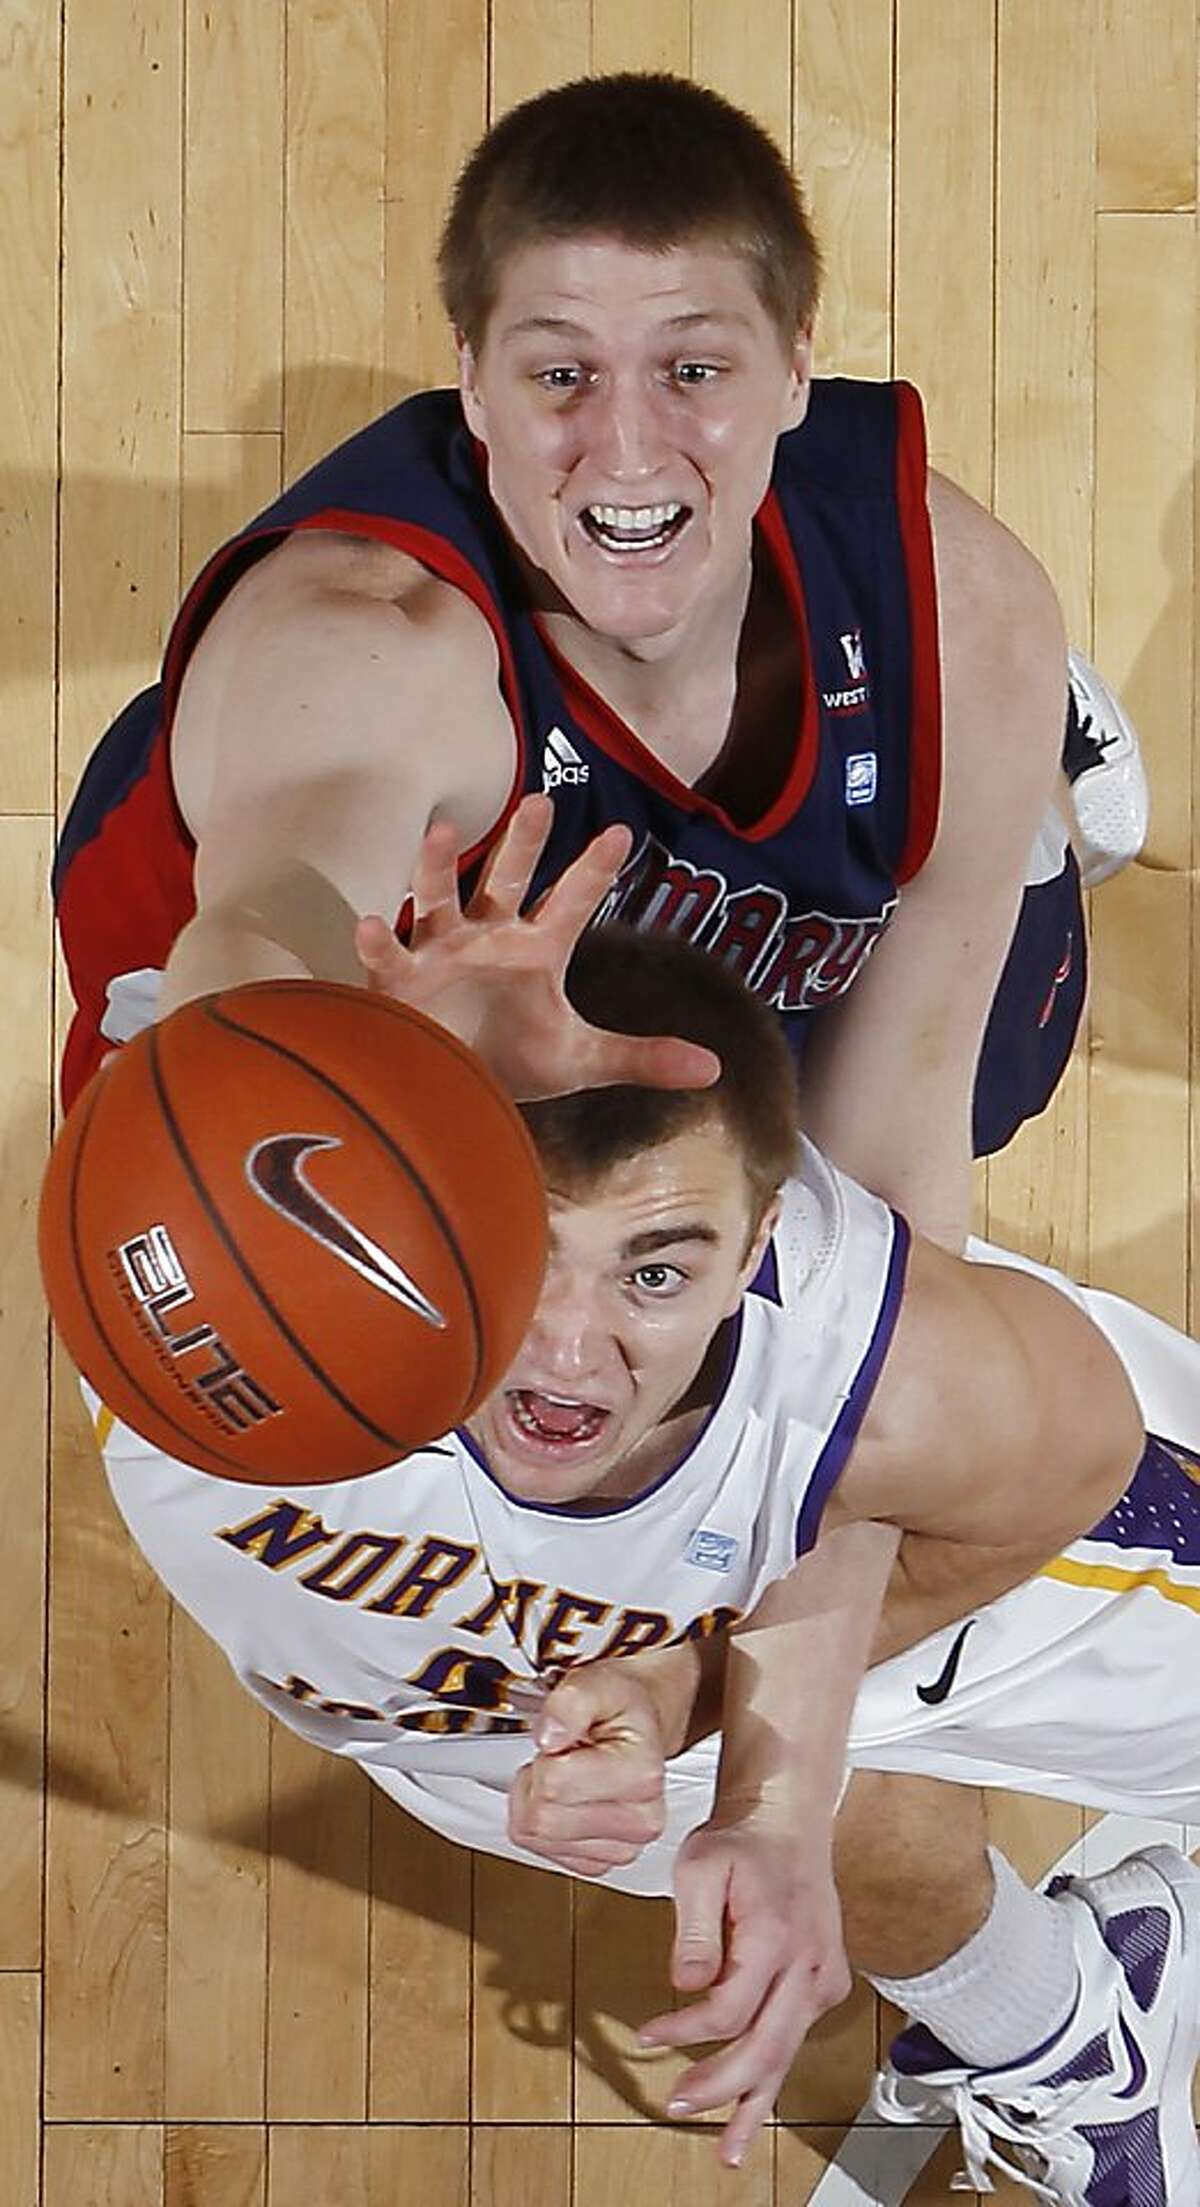 Saint Mary's Matt Hodgson, top, and Northern Iowa forward Chip Rank battle for a rebound in the second half of an NCAA college basketball game Sunday, Dec. 23, 2012, in Cedar Falls, Iowa. Northern Iowa won 82-75. (AP Photo/The Waterloo Courier, Matthew Putney)